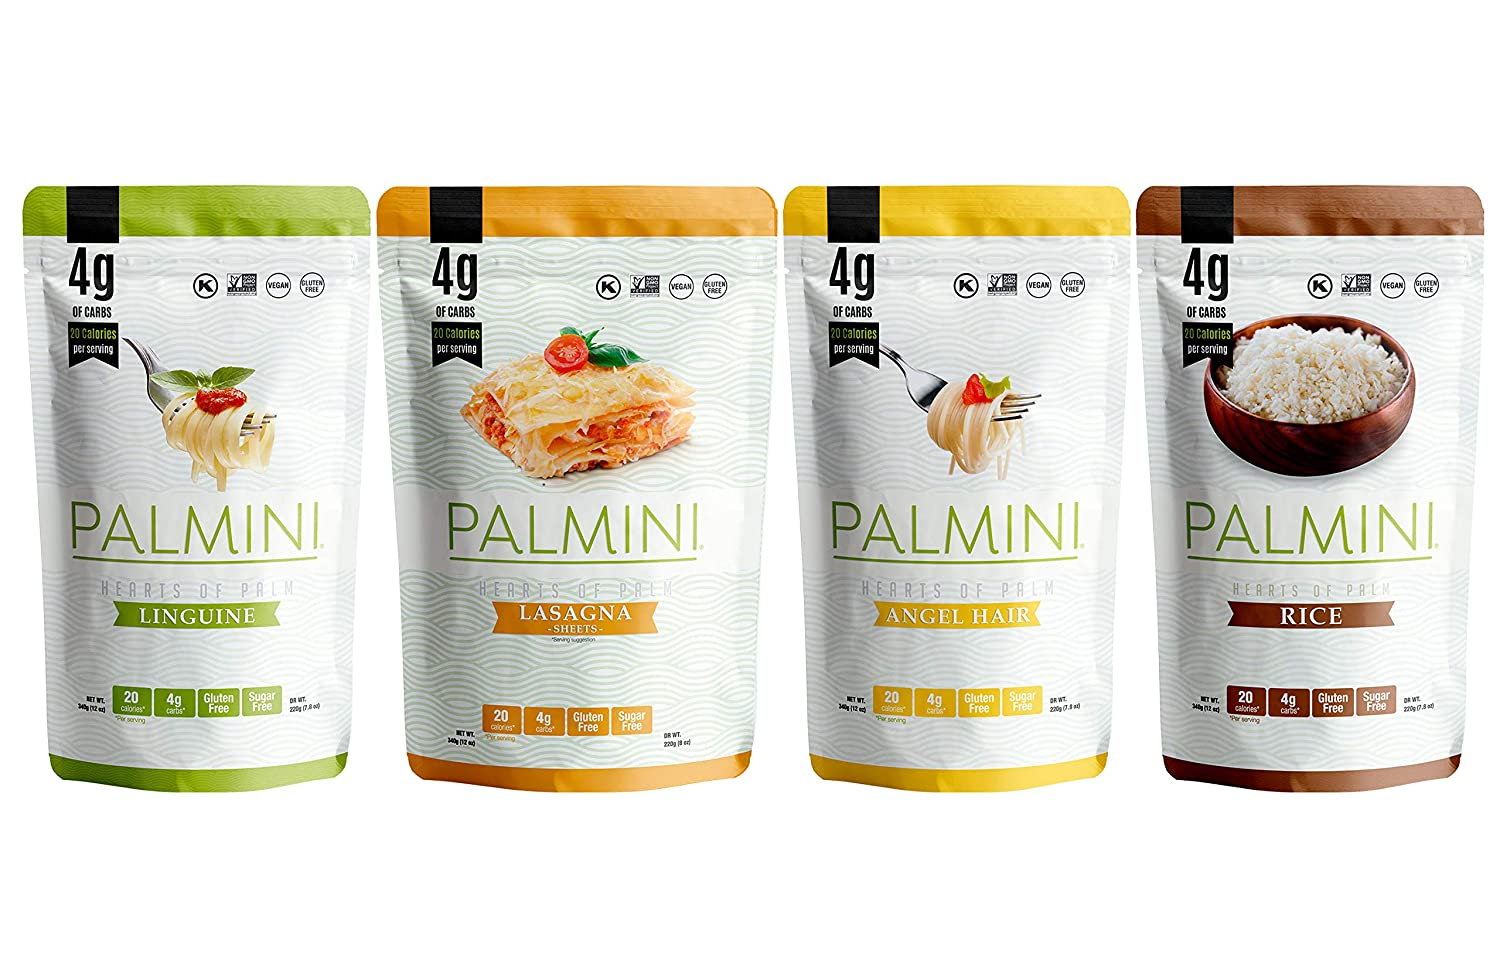 NEW !! Palmini Pouch VARIETY PACK   Linguine   Angel Hair   Lasagna   Rice   4g of Carbs   As Seen On Shark Tank   Gluten Free (12 Ounce (Pack of 4))